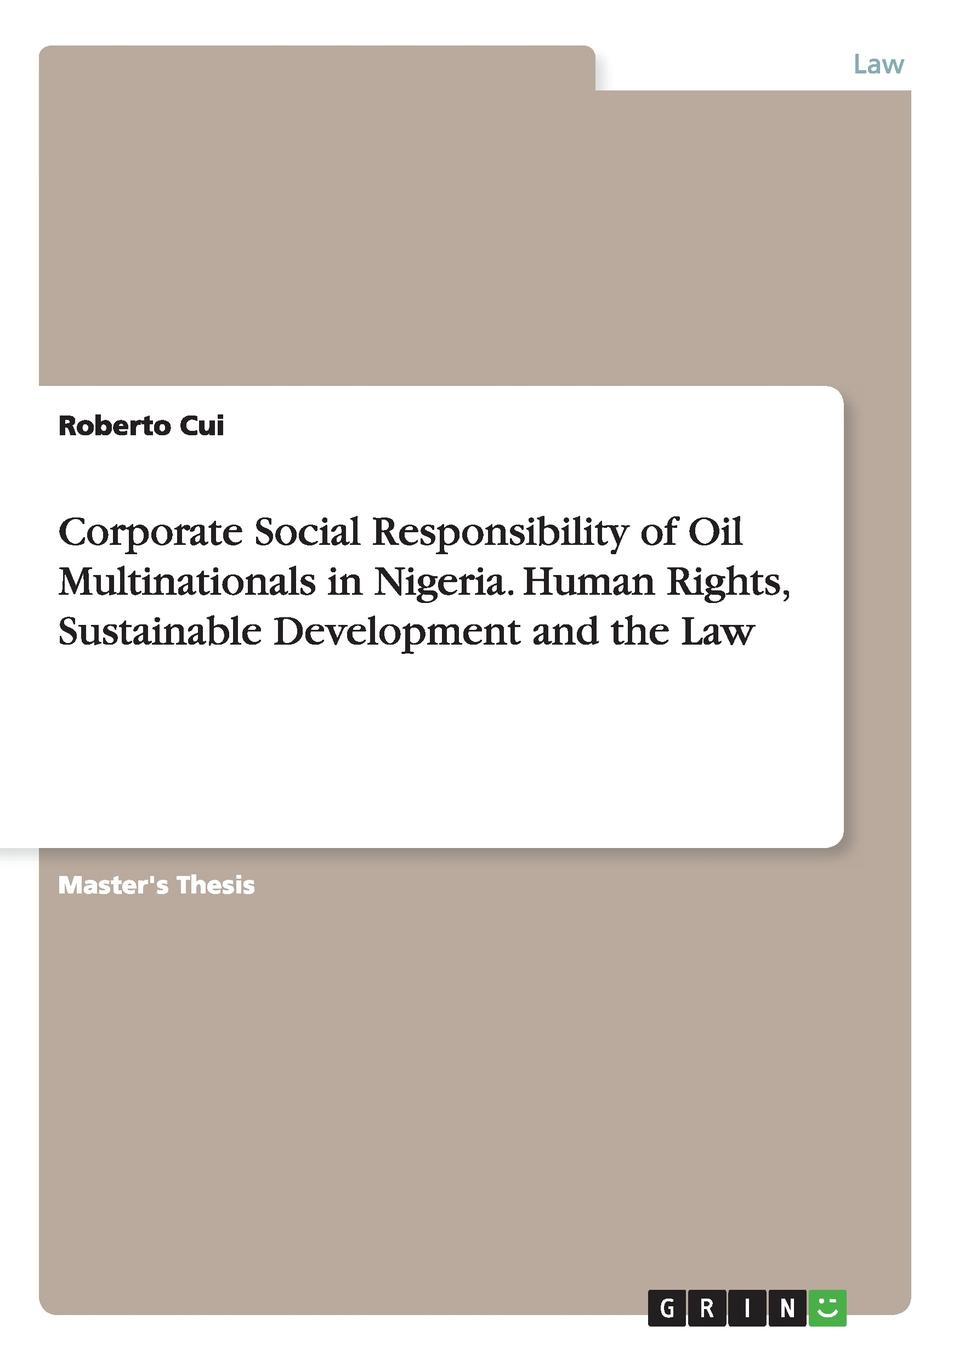 Roberto Cui Corporate Social Responsibility of Oil Multinationals in Nigeria. Human Rights, Sustainable Development and the Law